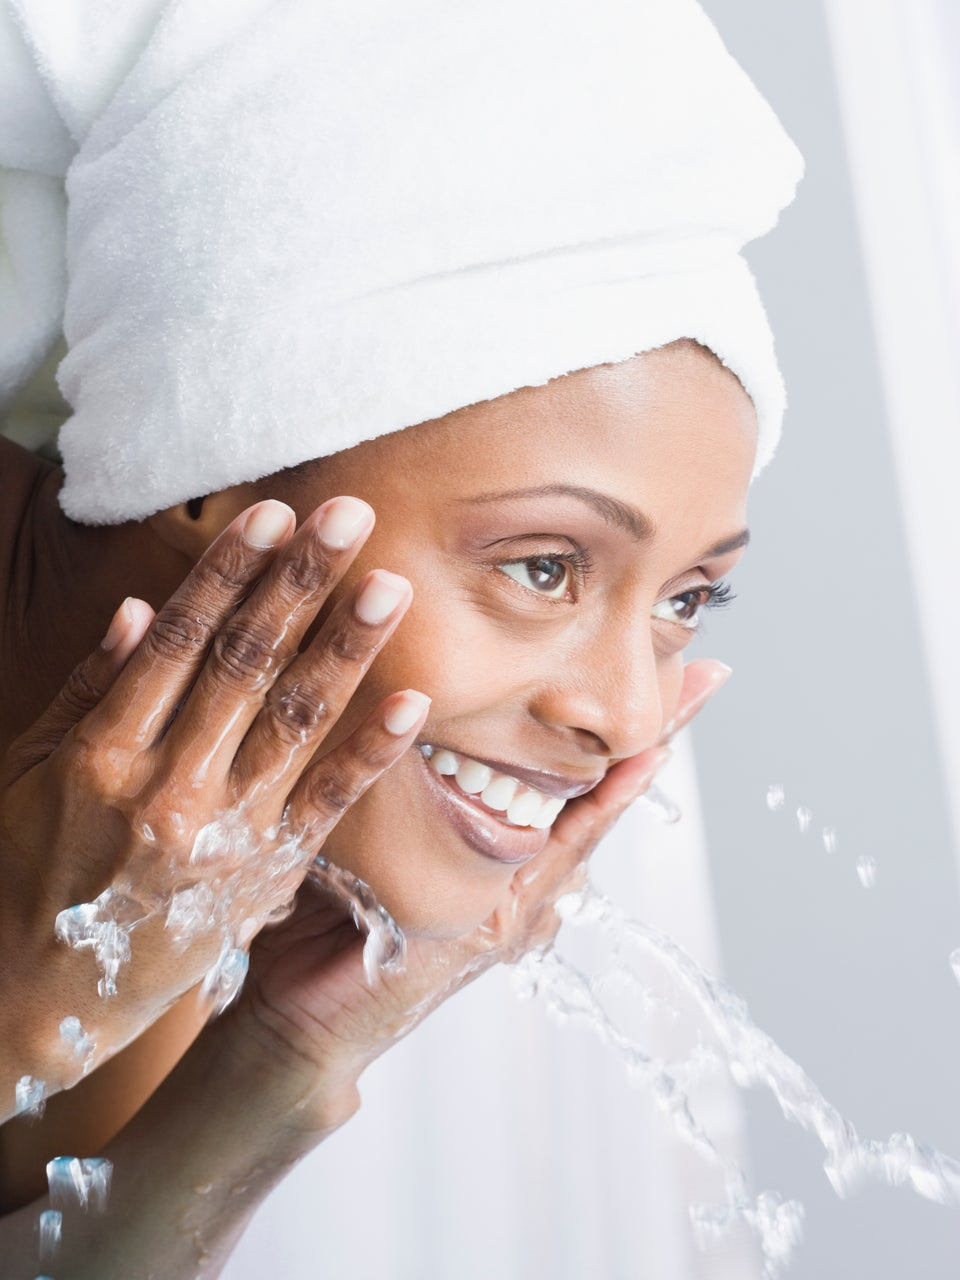 What the Heck Are Splash Masks and Do We Really Need Them?